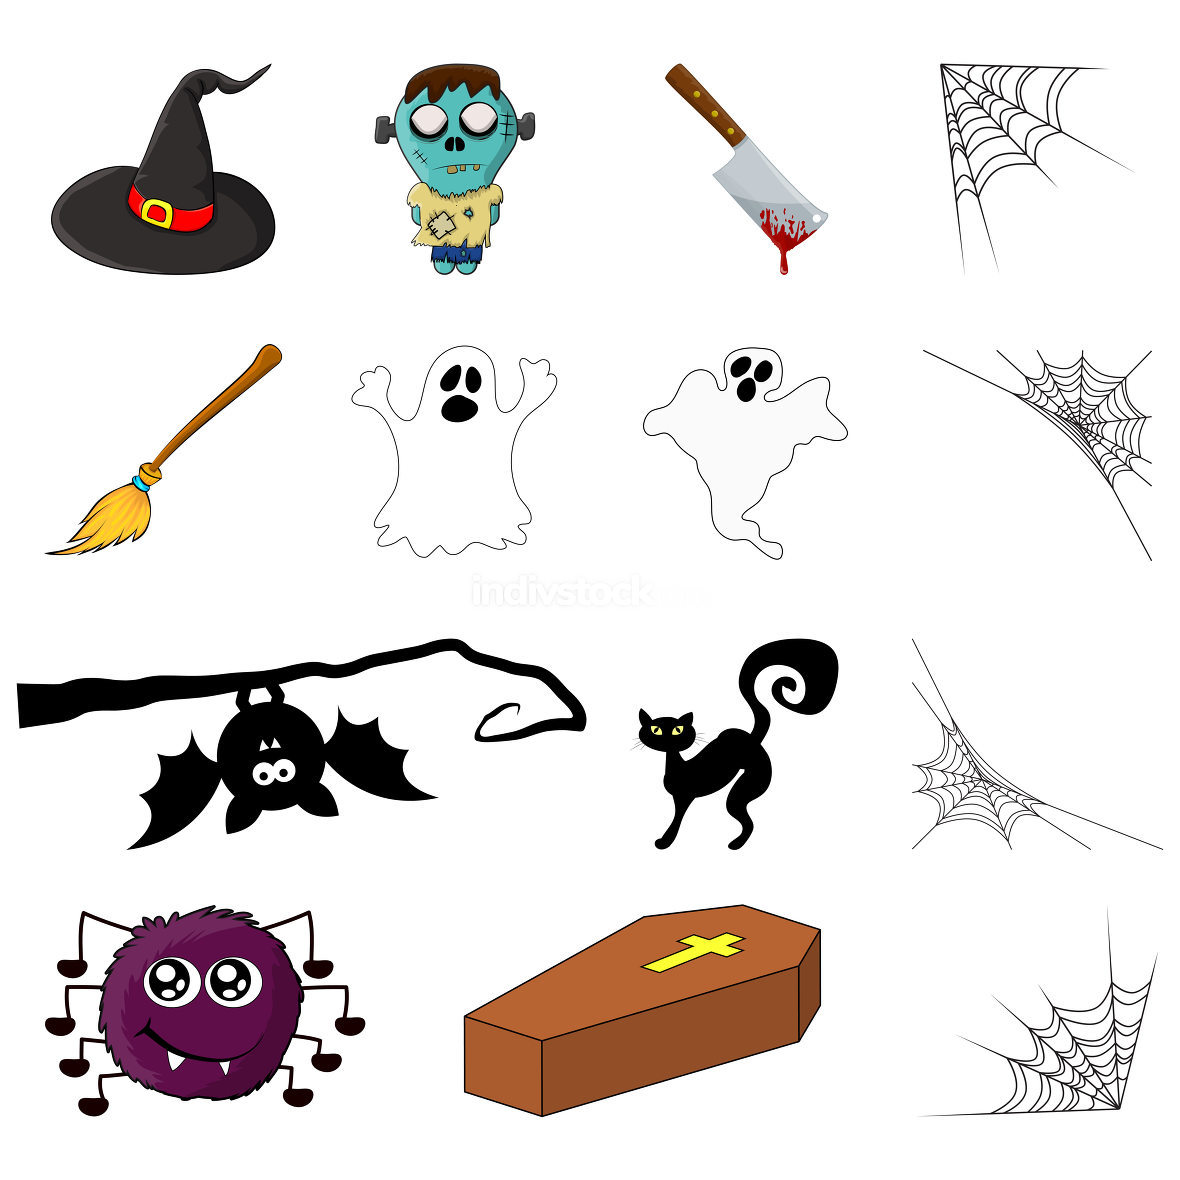 Halloween symbols. Vector collection of spooky icon set for party invitation. Creepy cartoon design element isolated on white